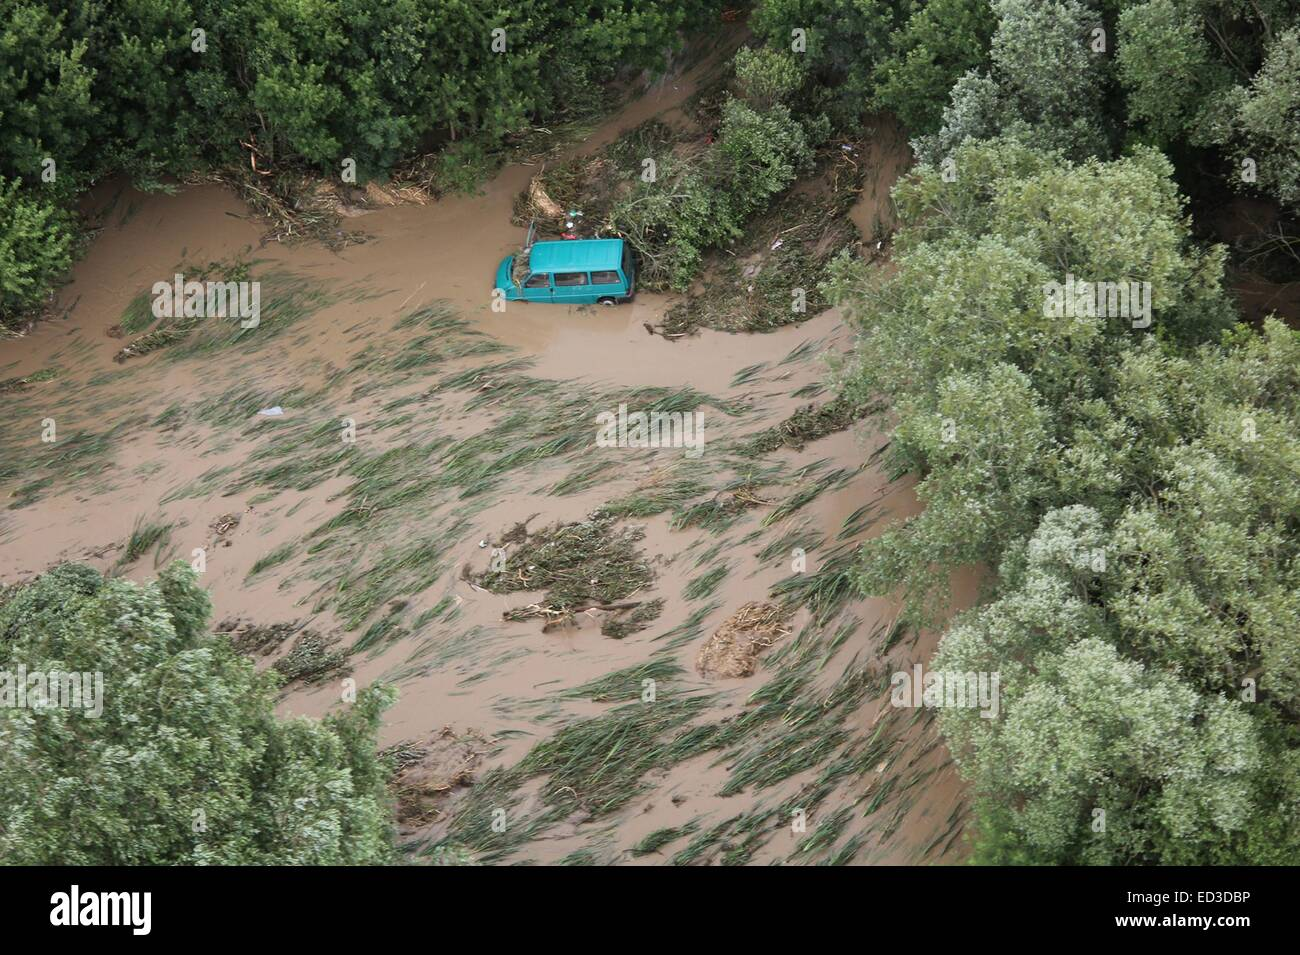 Bulgarian Air Force officers rescue tourists after heavy floods hit the Black Sea resort of Albena, east of the Stock Photo